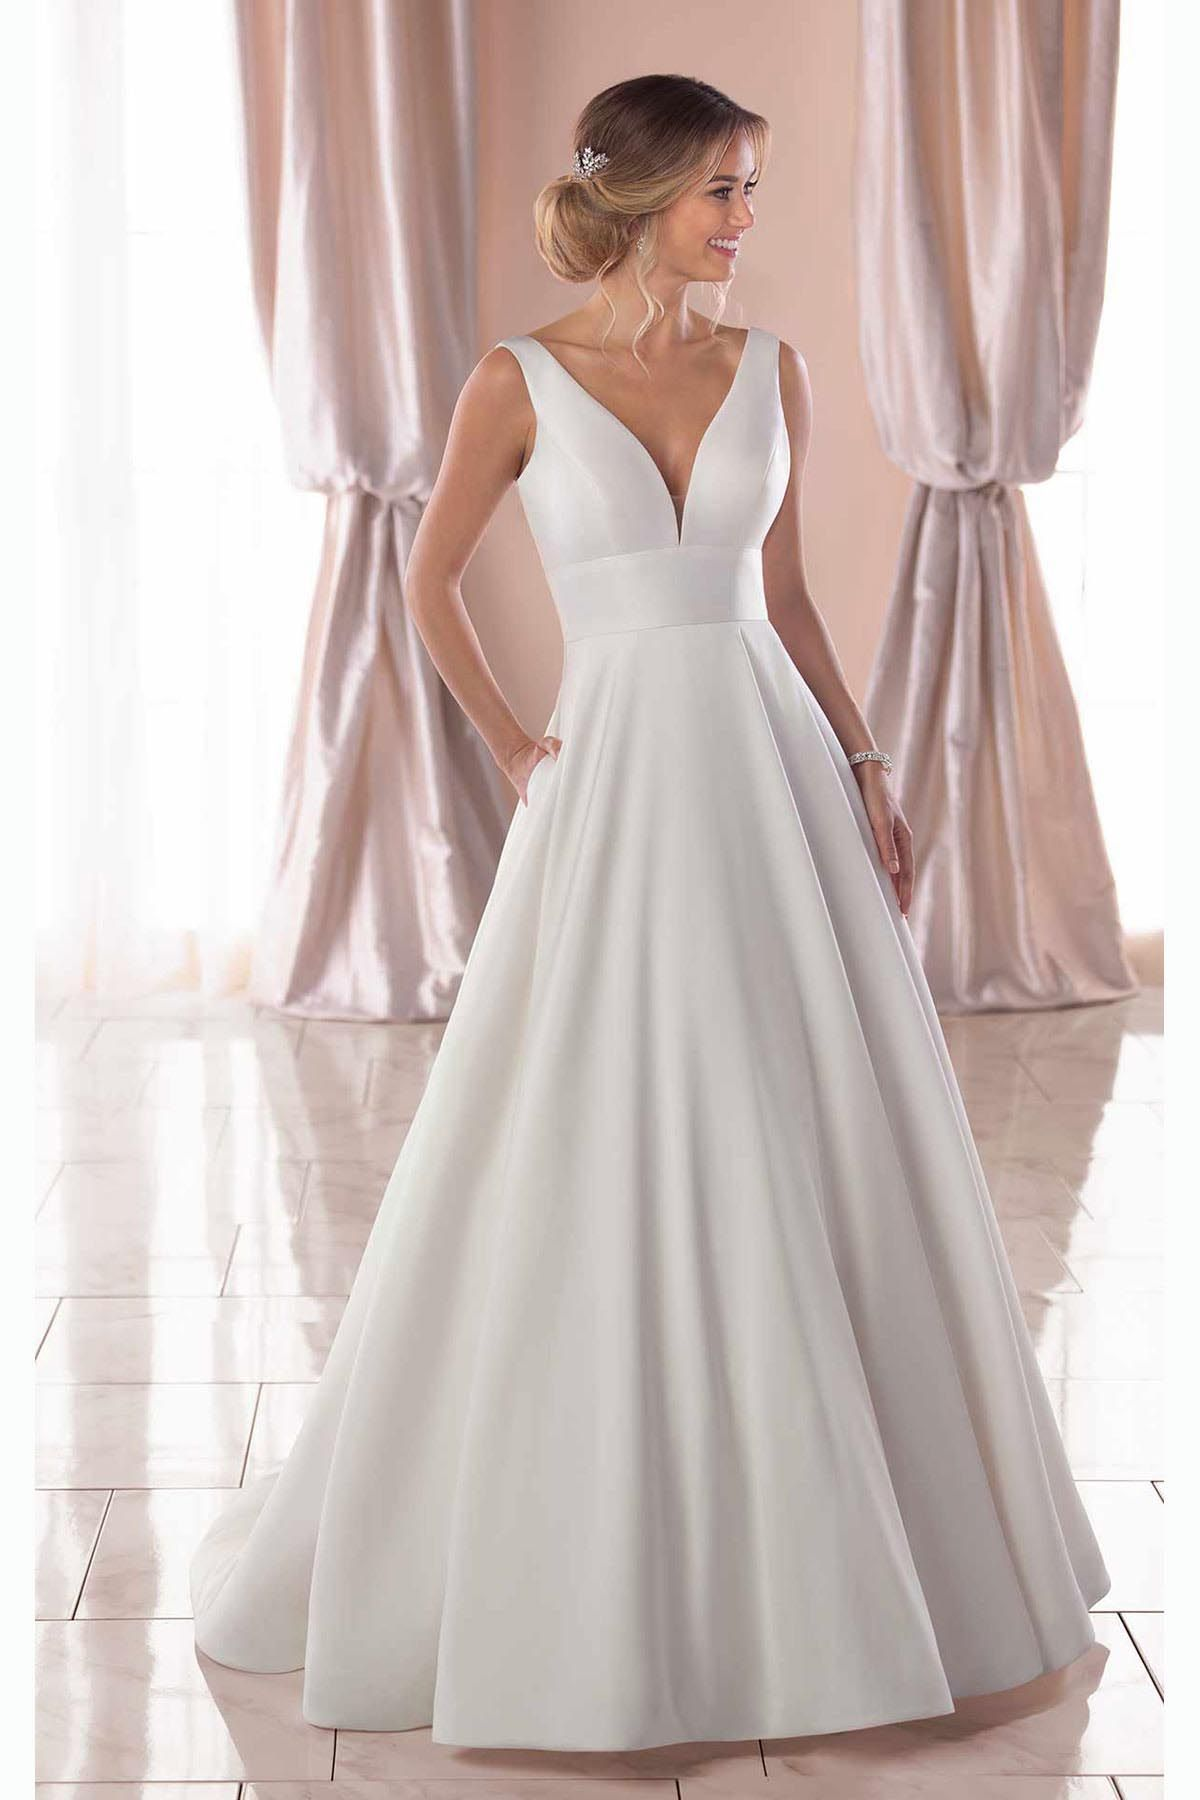 Bridal Gowns With Images Ball Gown Wedding Dress Simple Wedding Gowns Stella York Wedding Dress